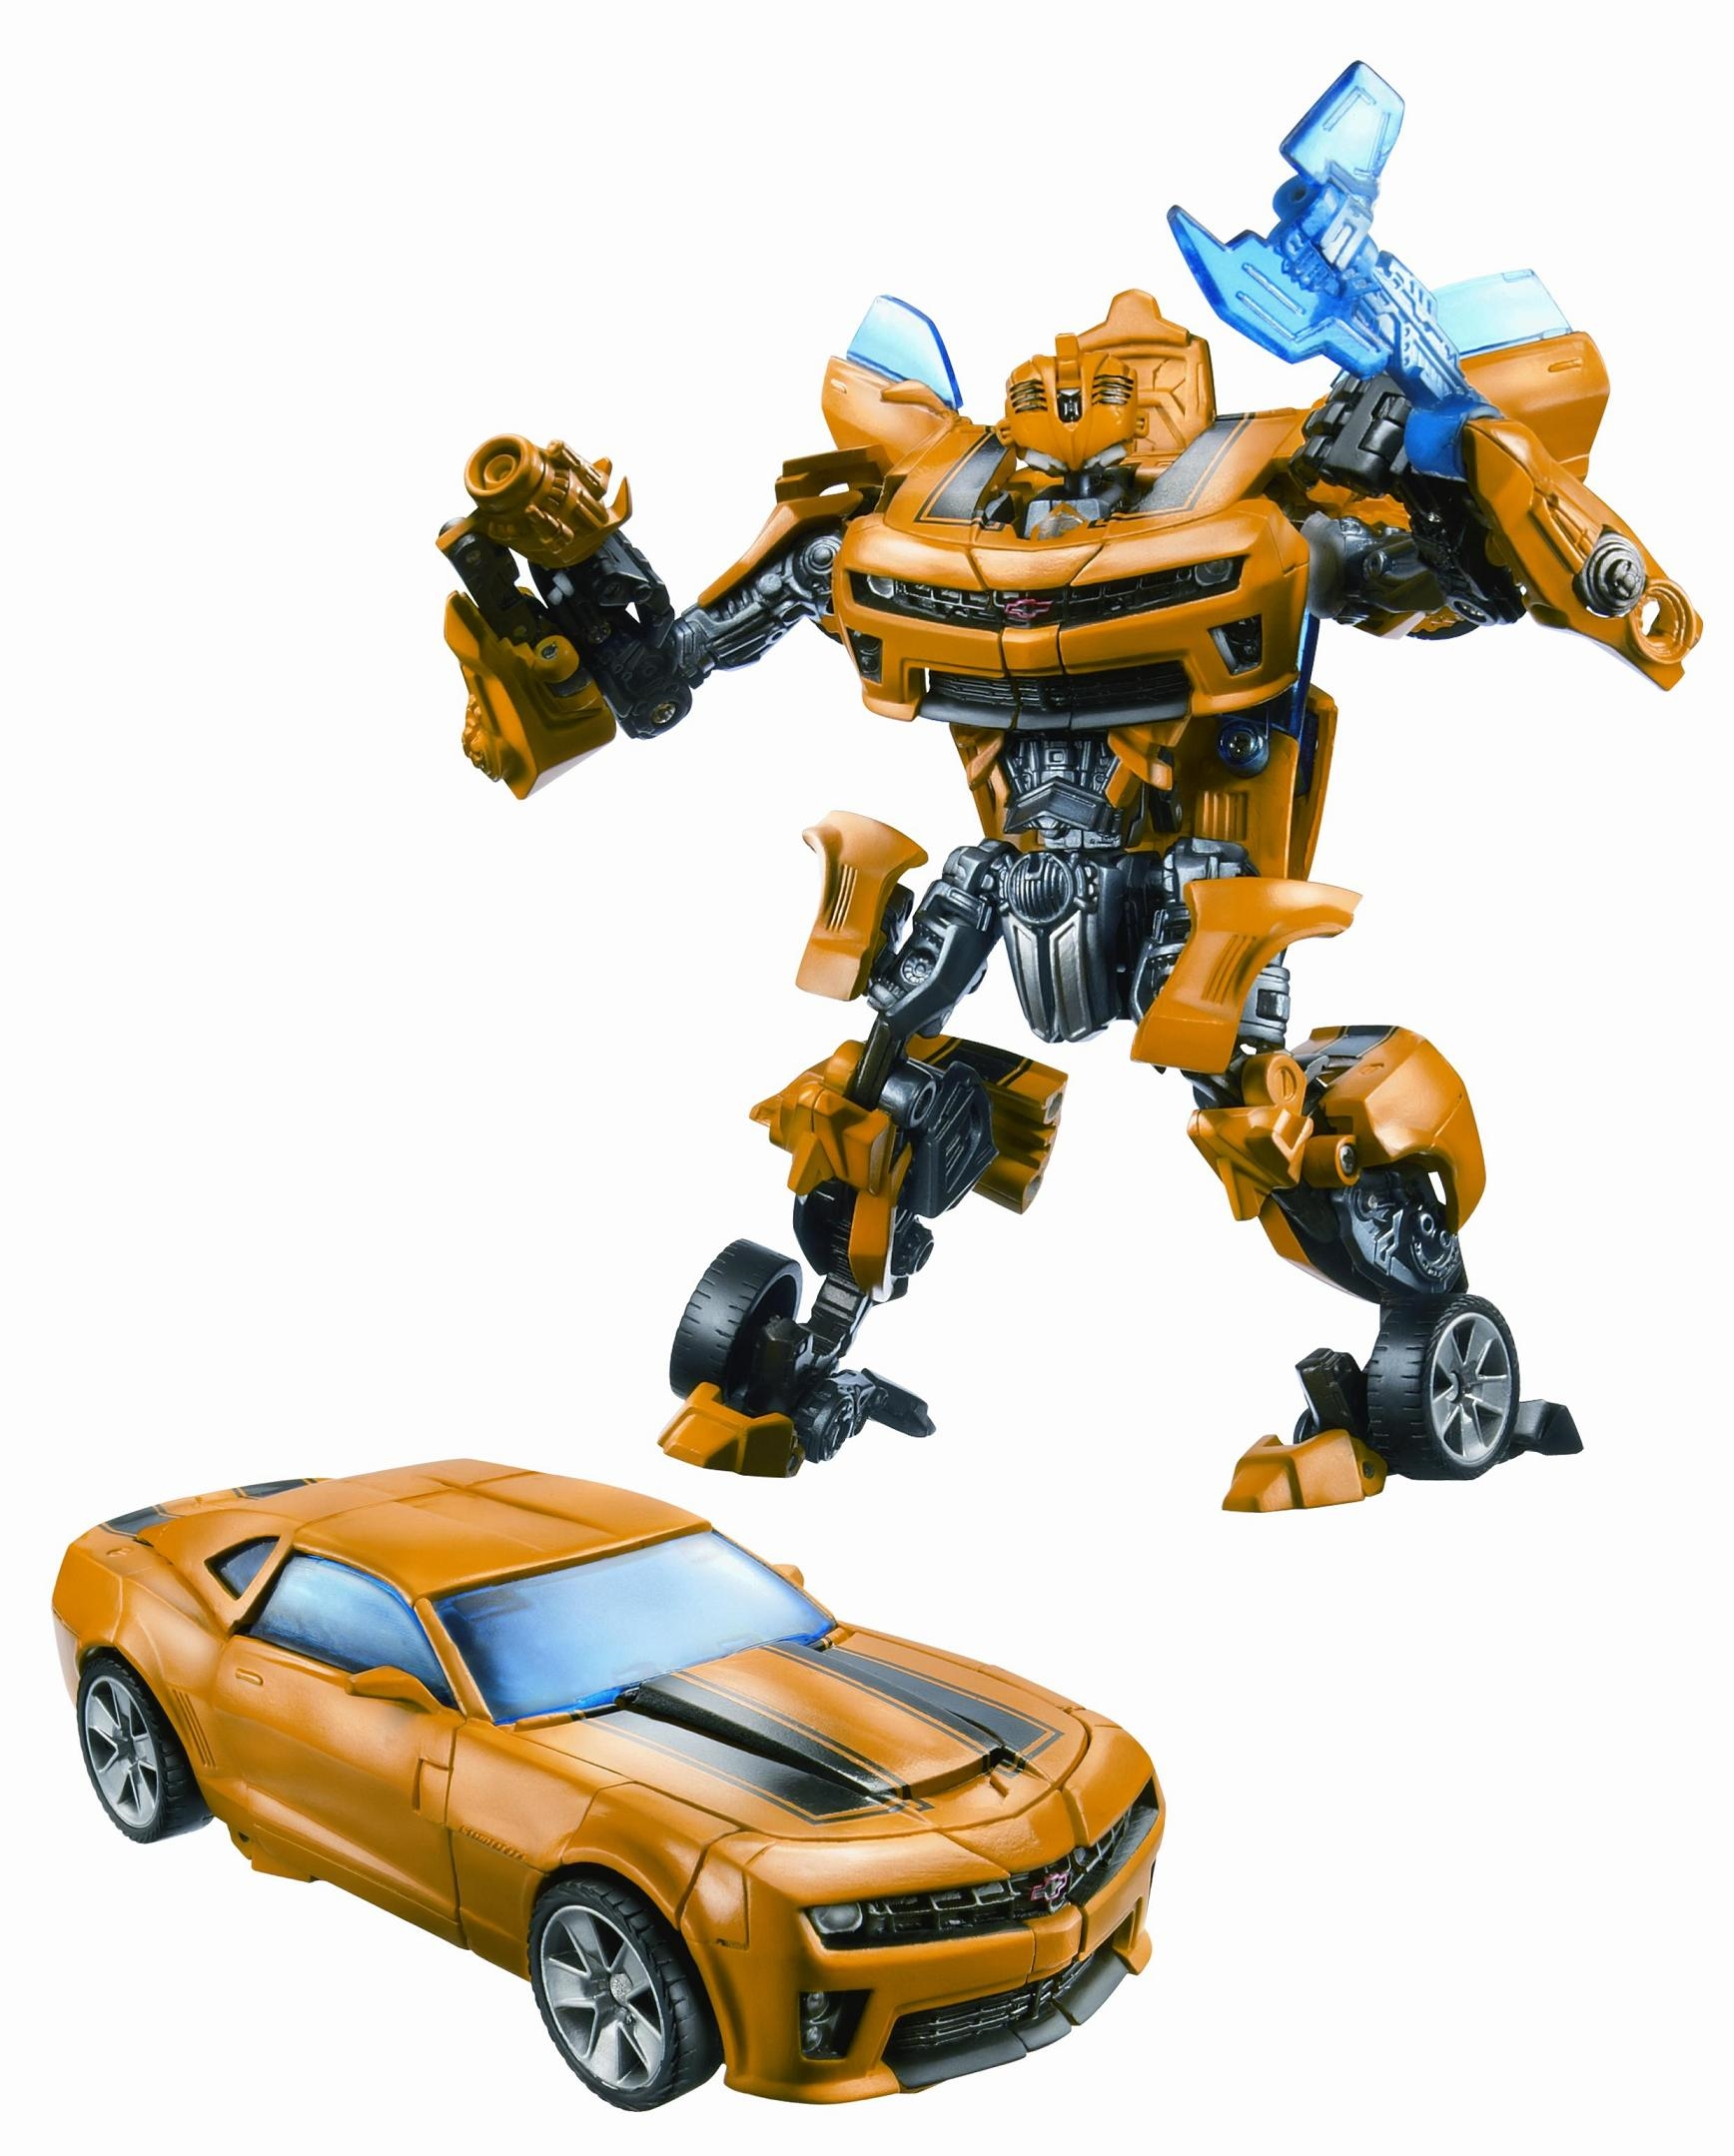 bumblebee transformer car toy